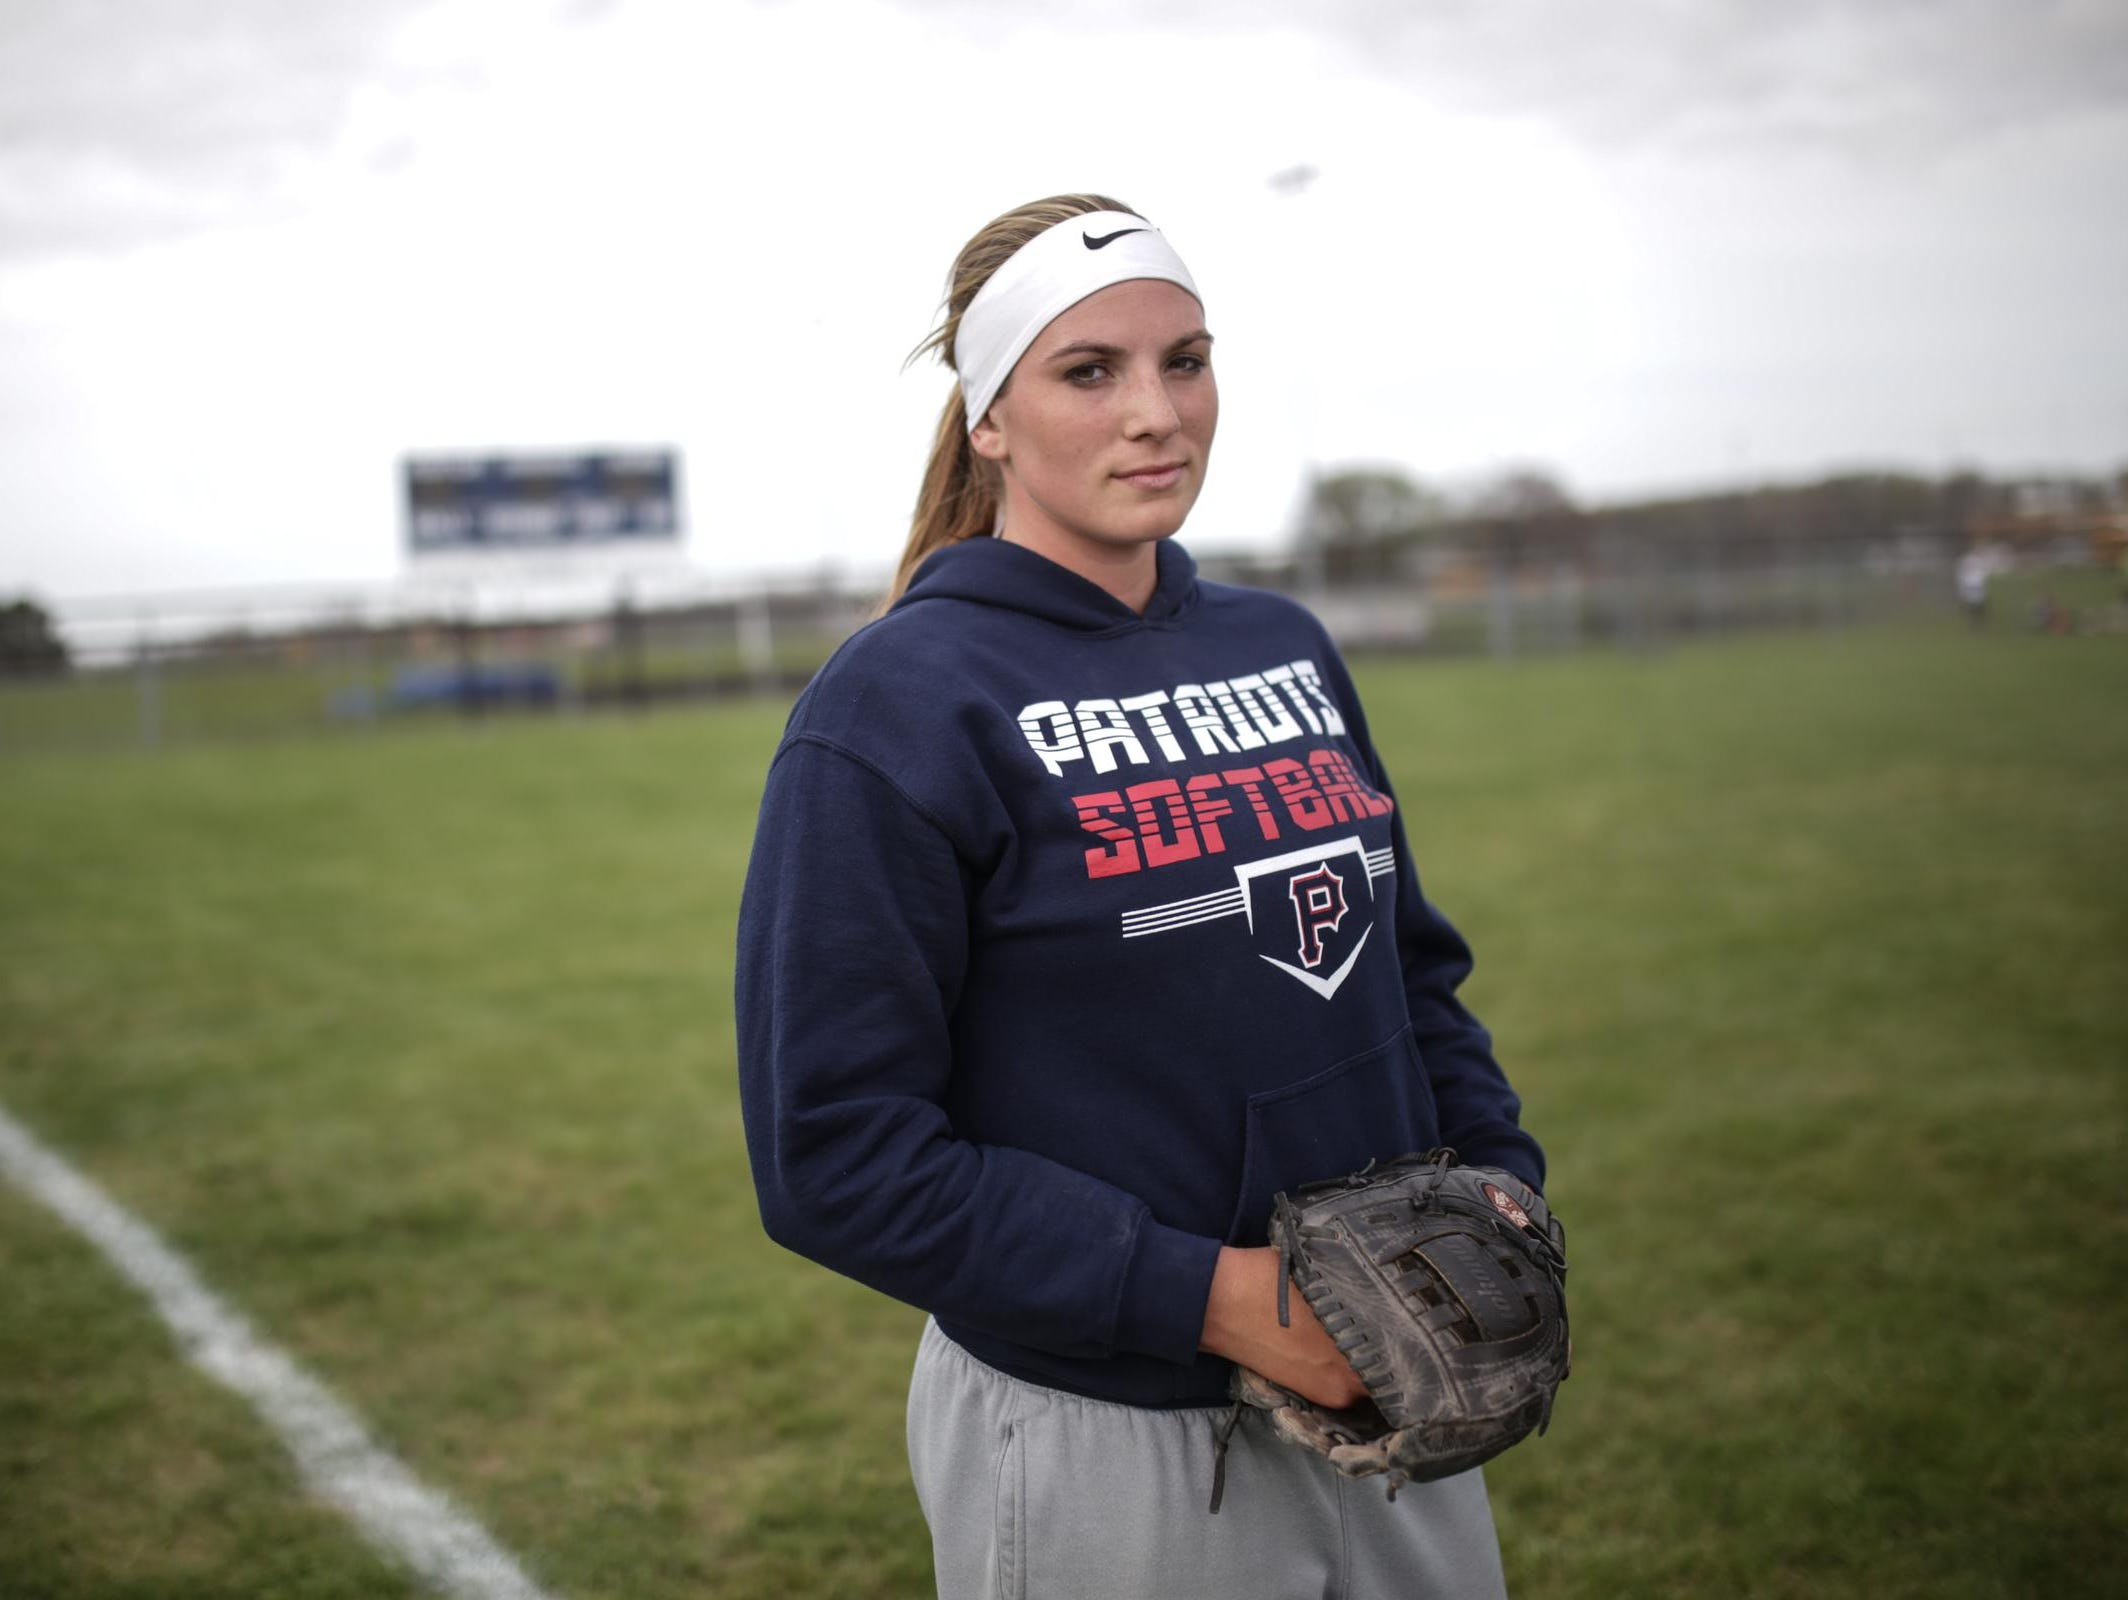 Unionville-Sebewaing's Nikki Bauer is the ace for the defending Div. 4 state champs, and may be the first player from Michigan to sign with Stanford.